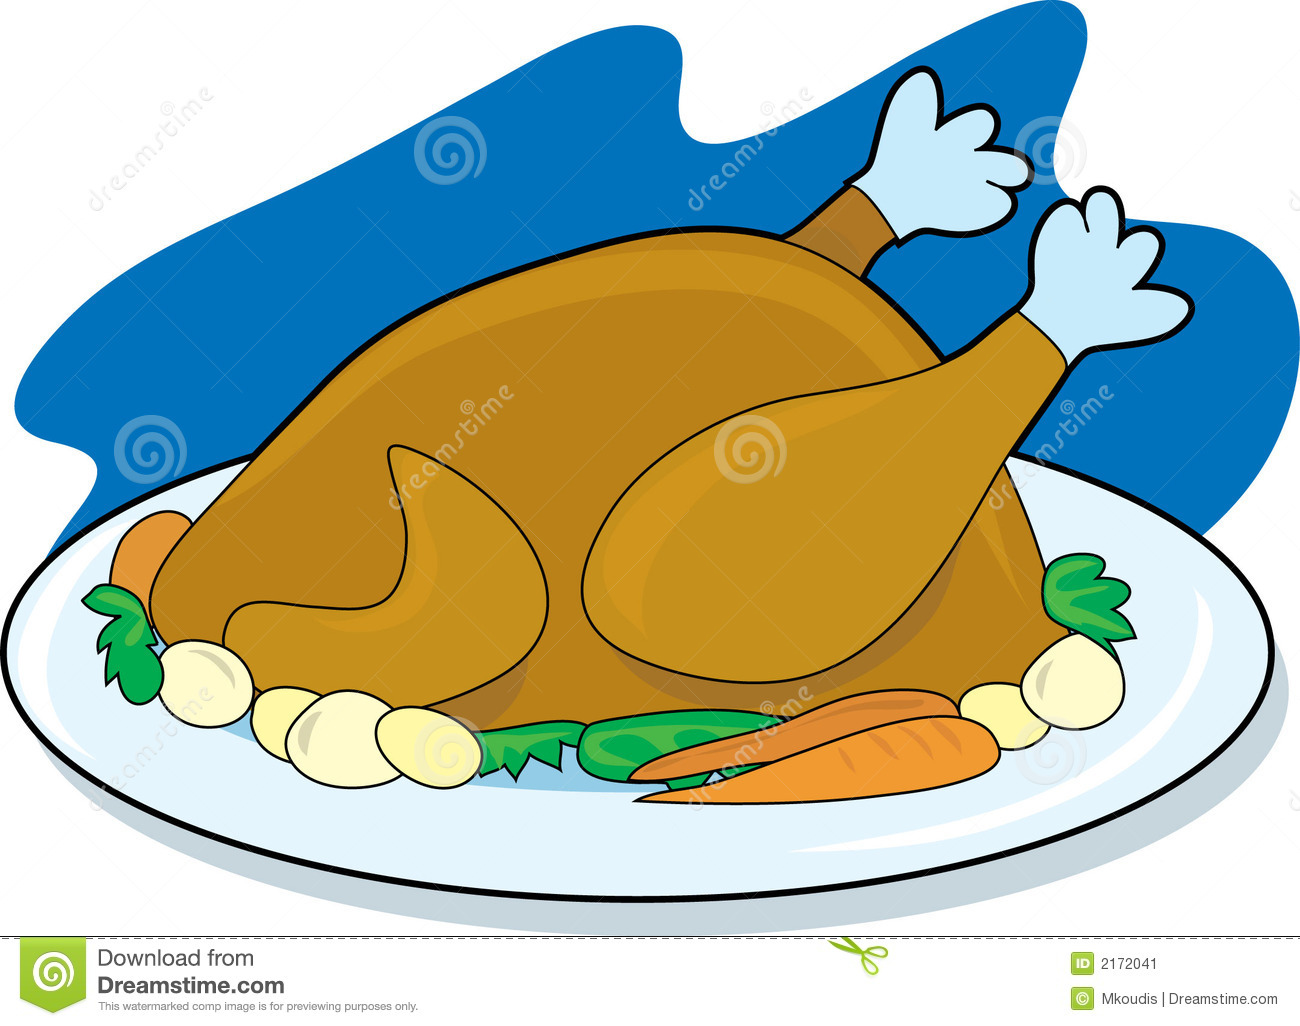 Covered clipart food platter Bay Clipart Clipart Meat Chicken